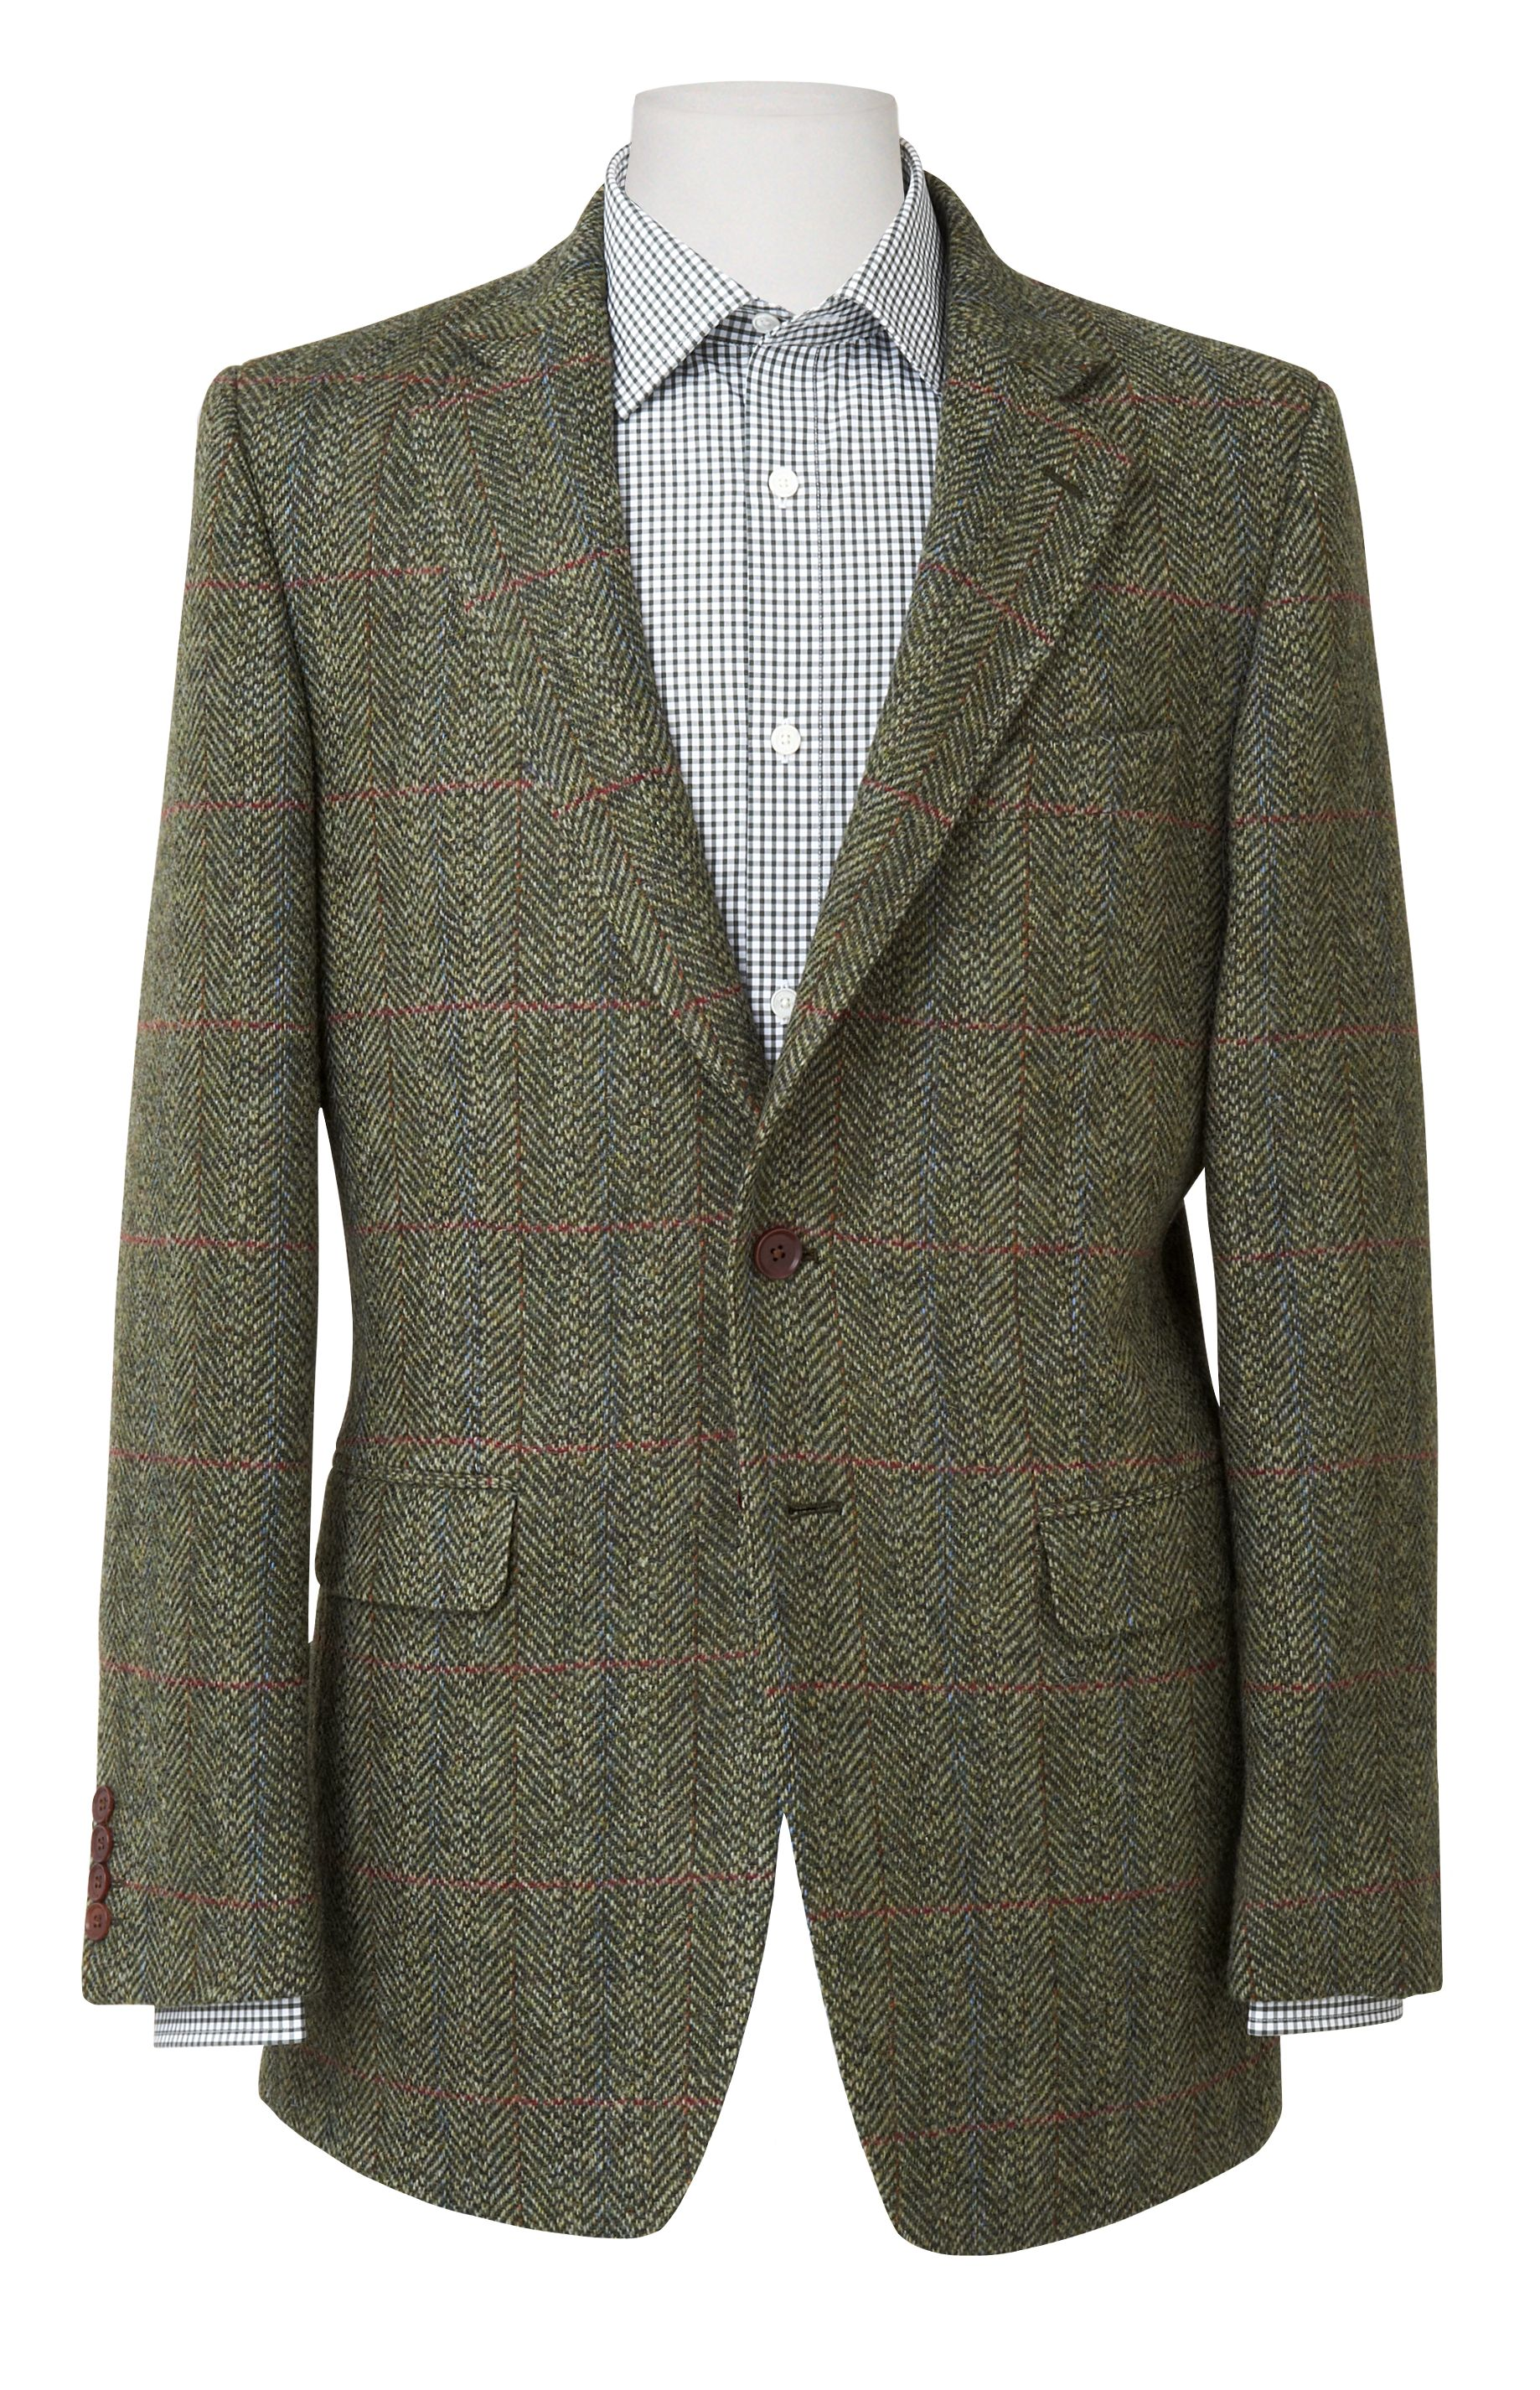 Hunter green tweed jacket